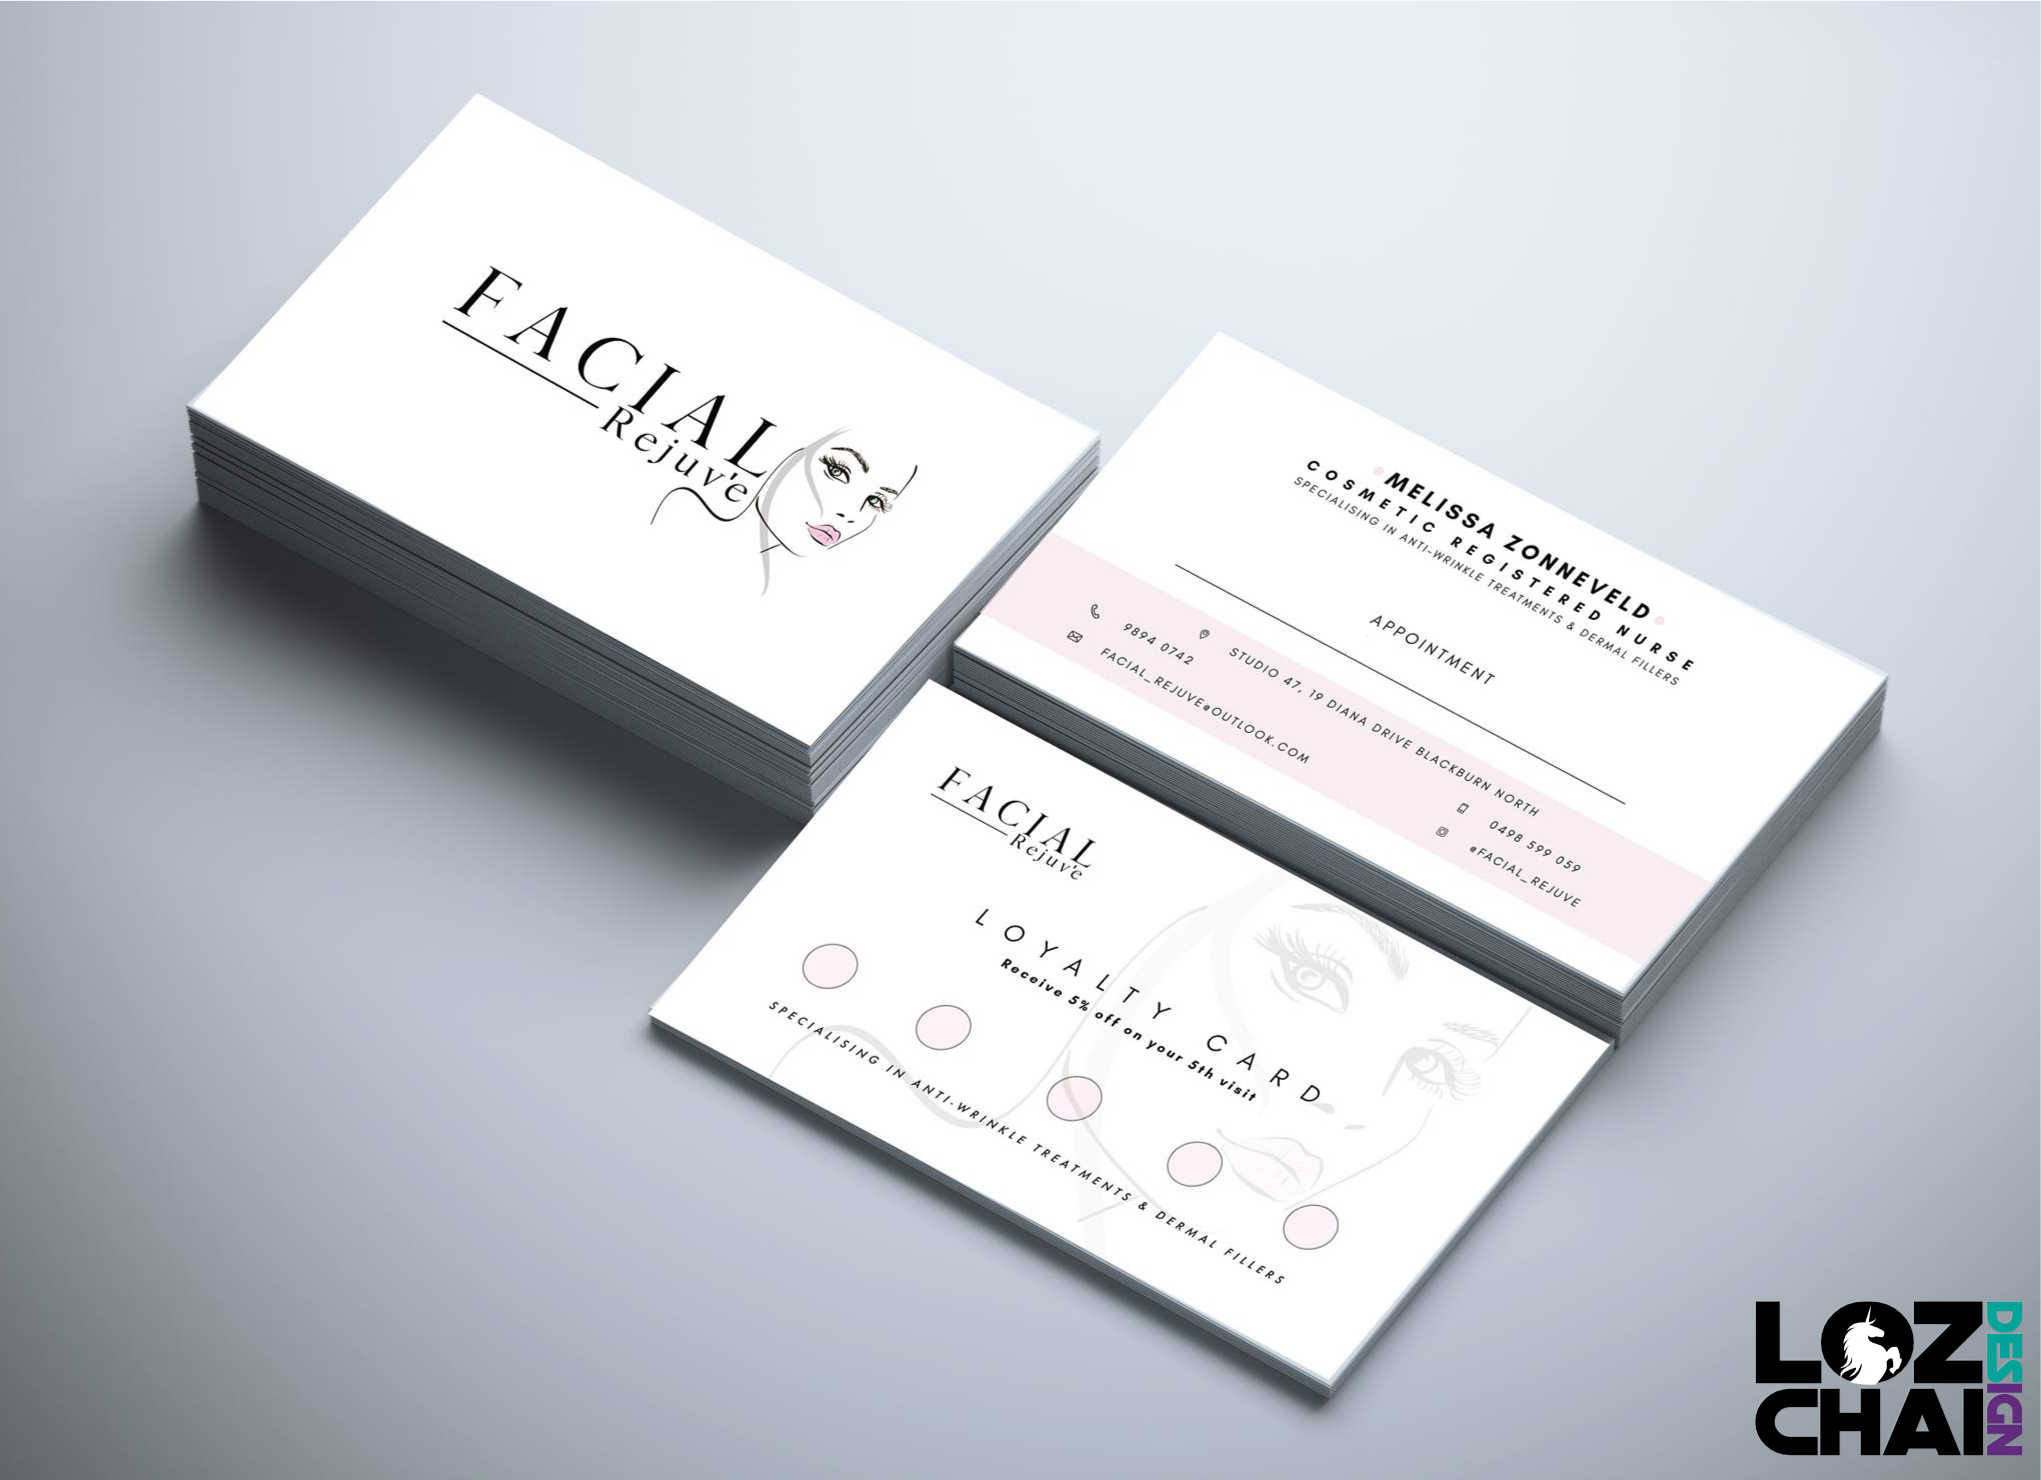 Clean , minimal logo design and layout for cosmetologist business ...